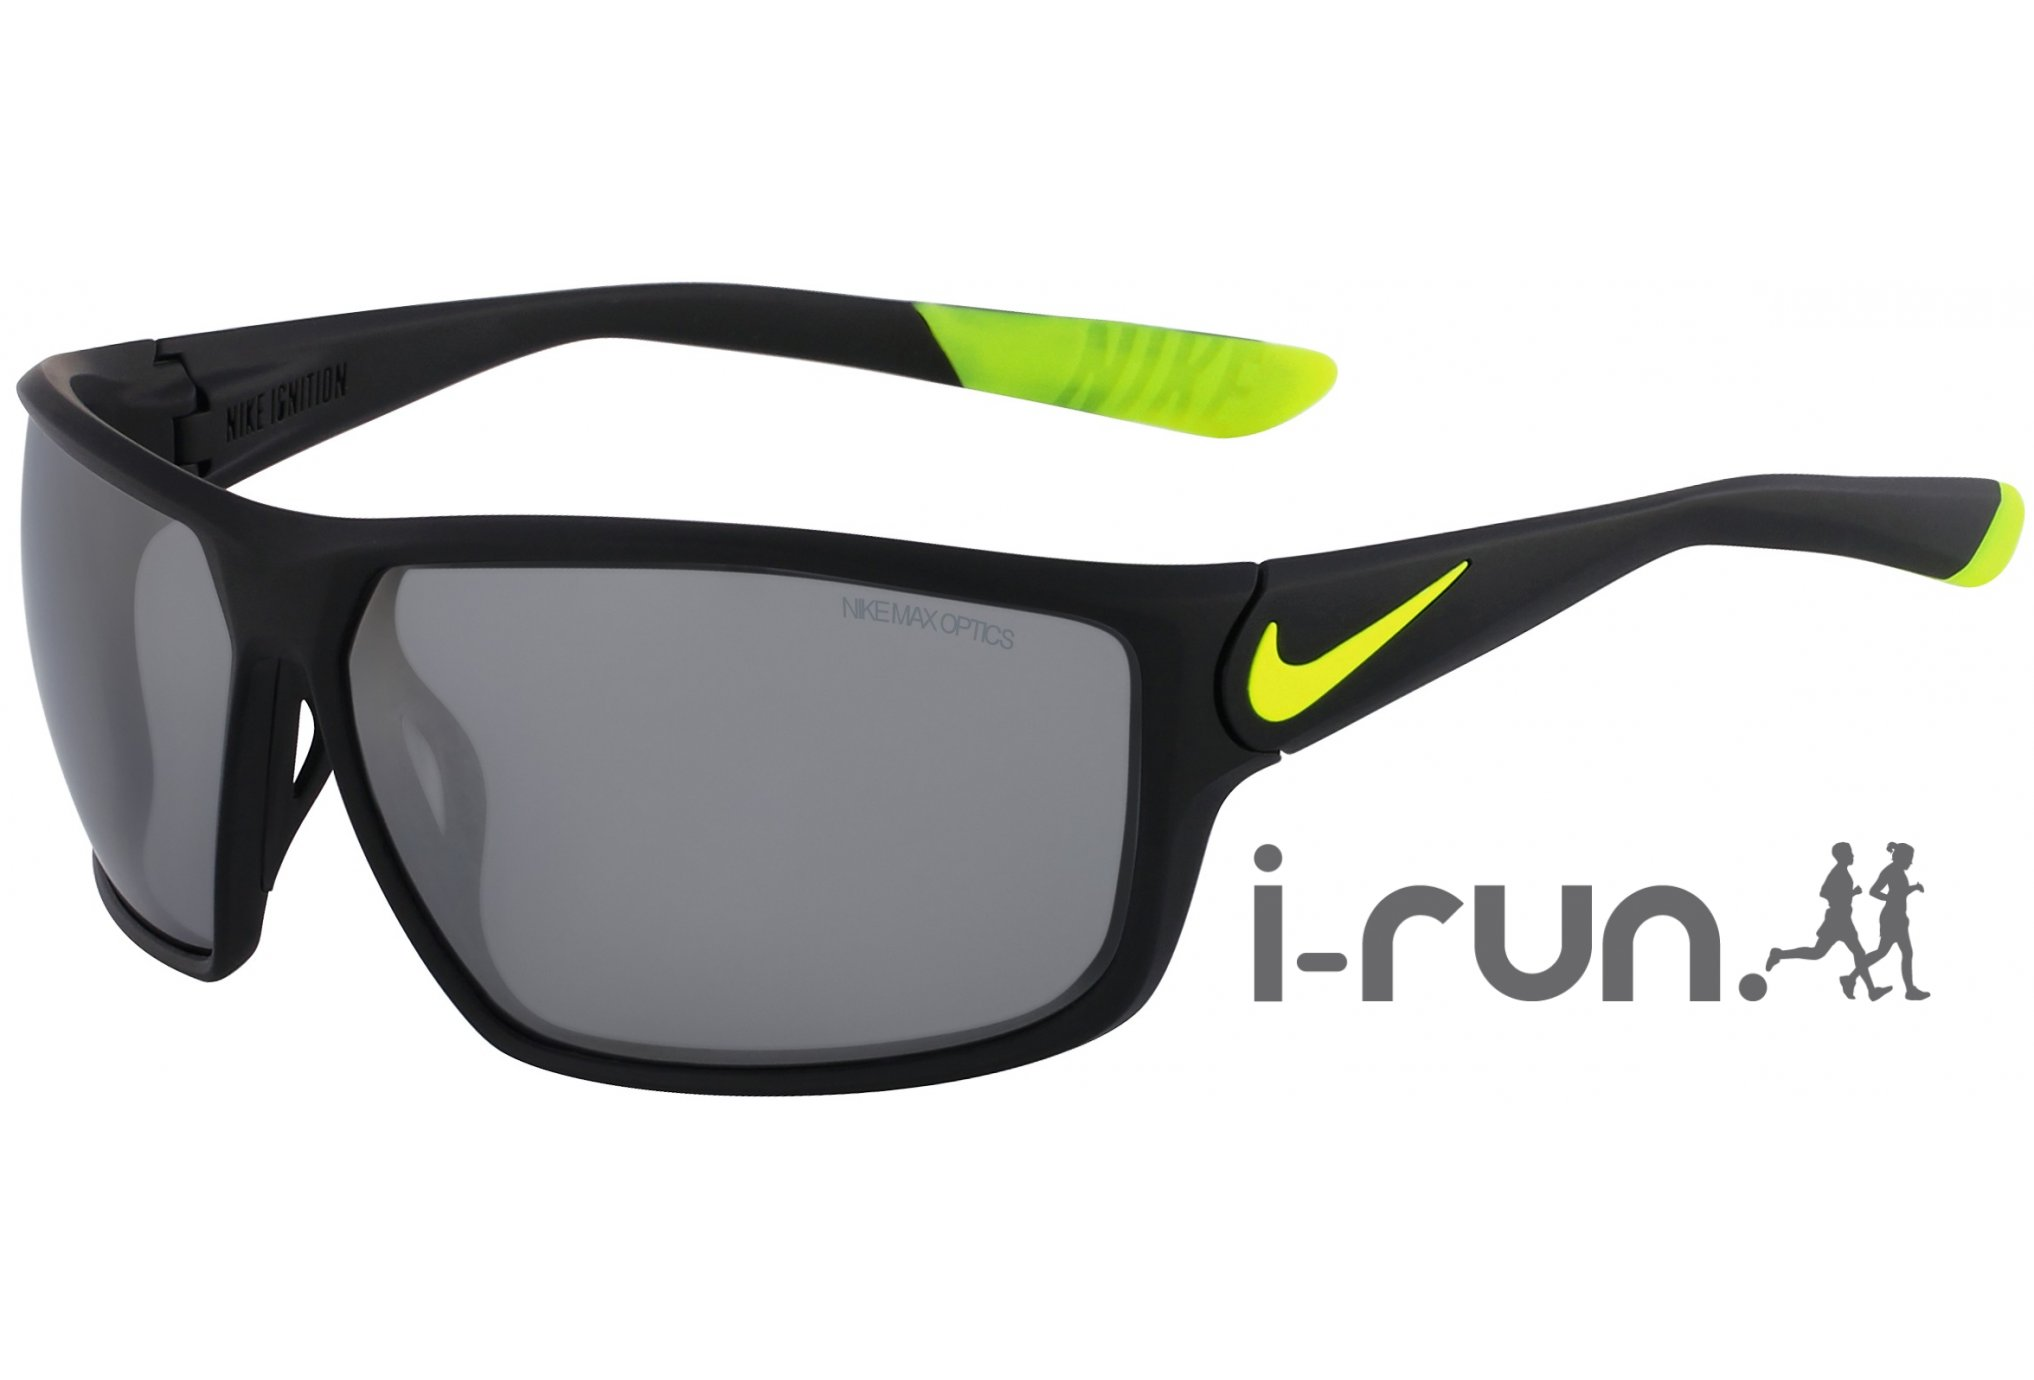 Nike Lunettes Ignition Lunettes